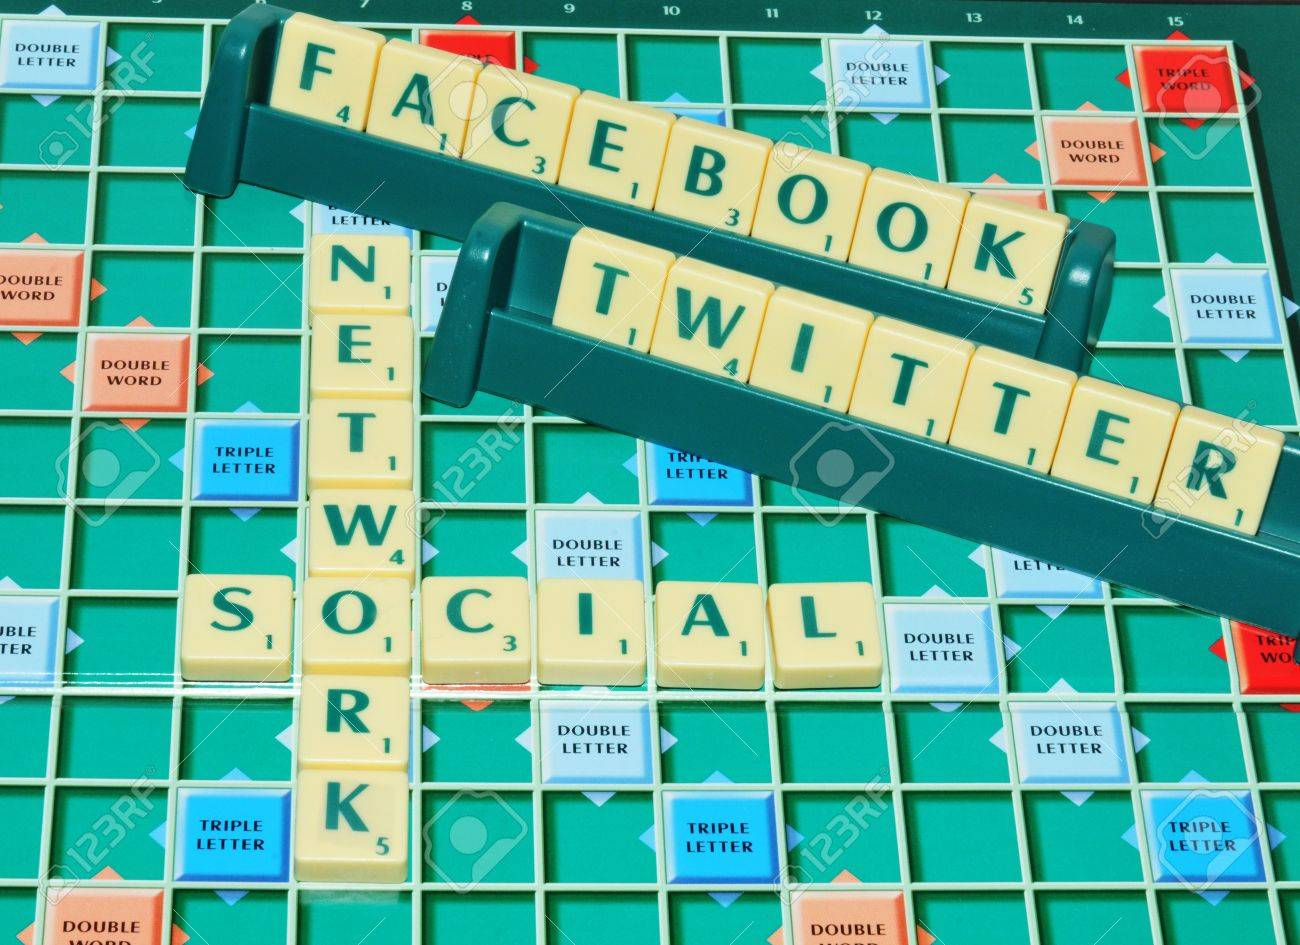 London, UK - 11 June, 2012: Social network concept with Facebook and Twitter on game board - 14515021